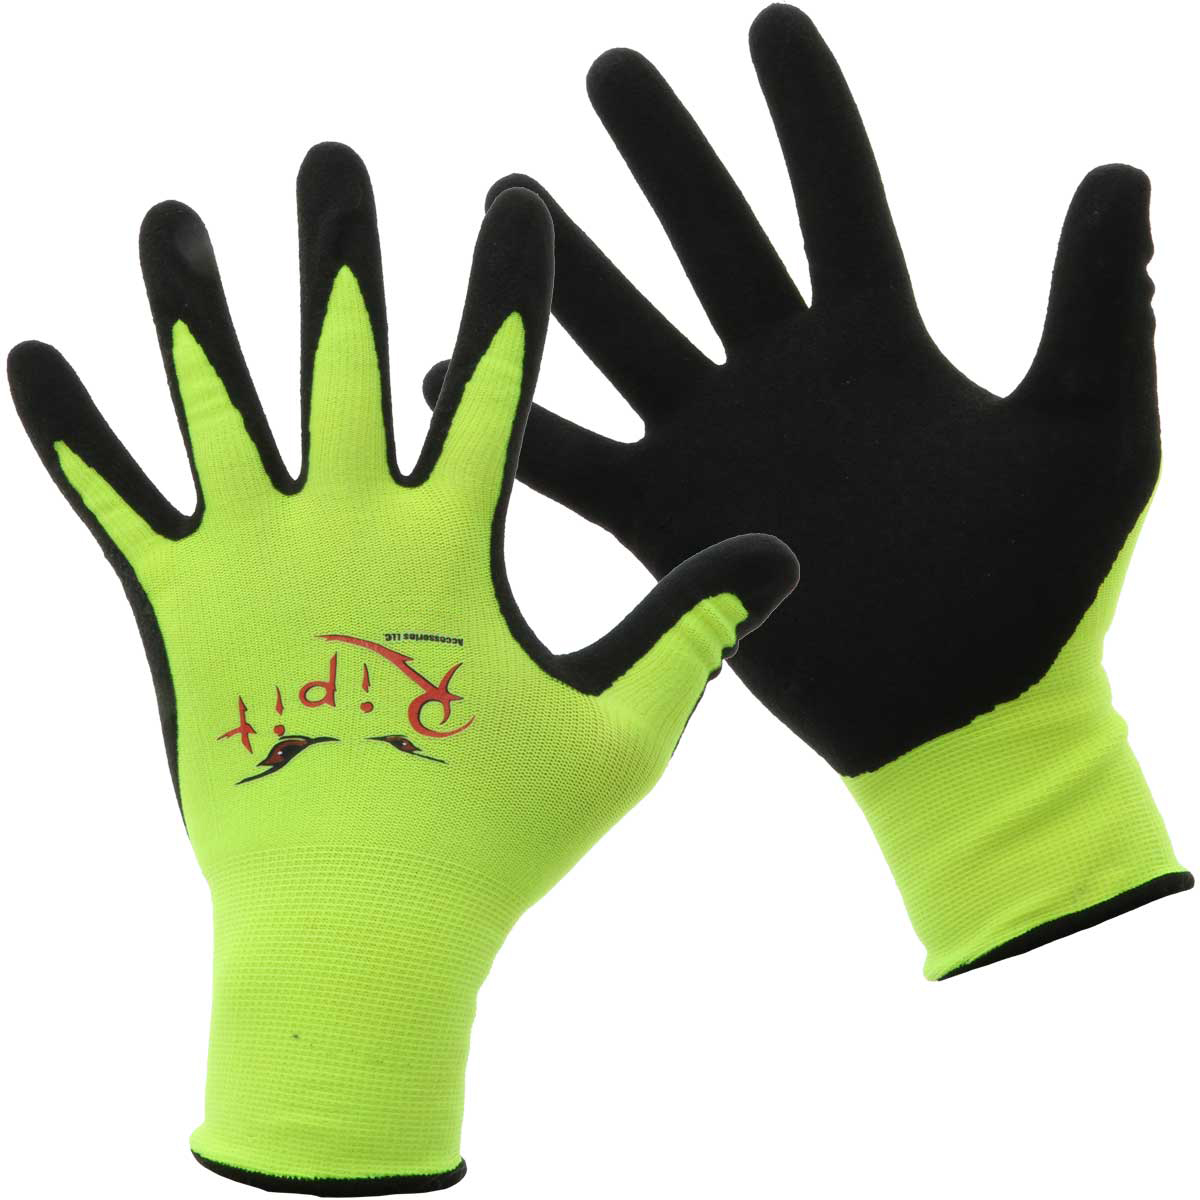 Rip-It Drywall Gloves - Hi-Vis Yellow